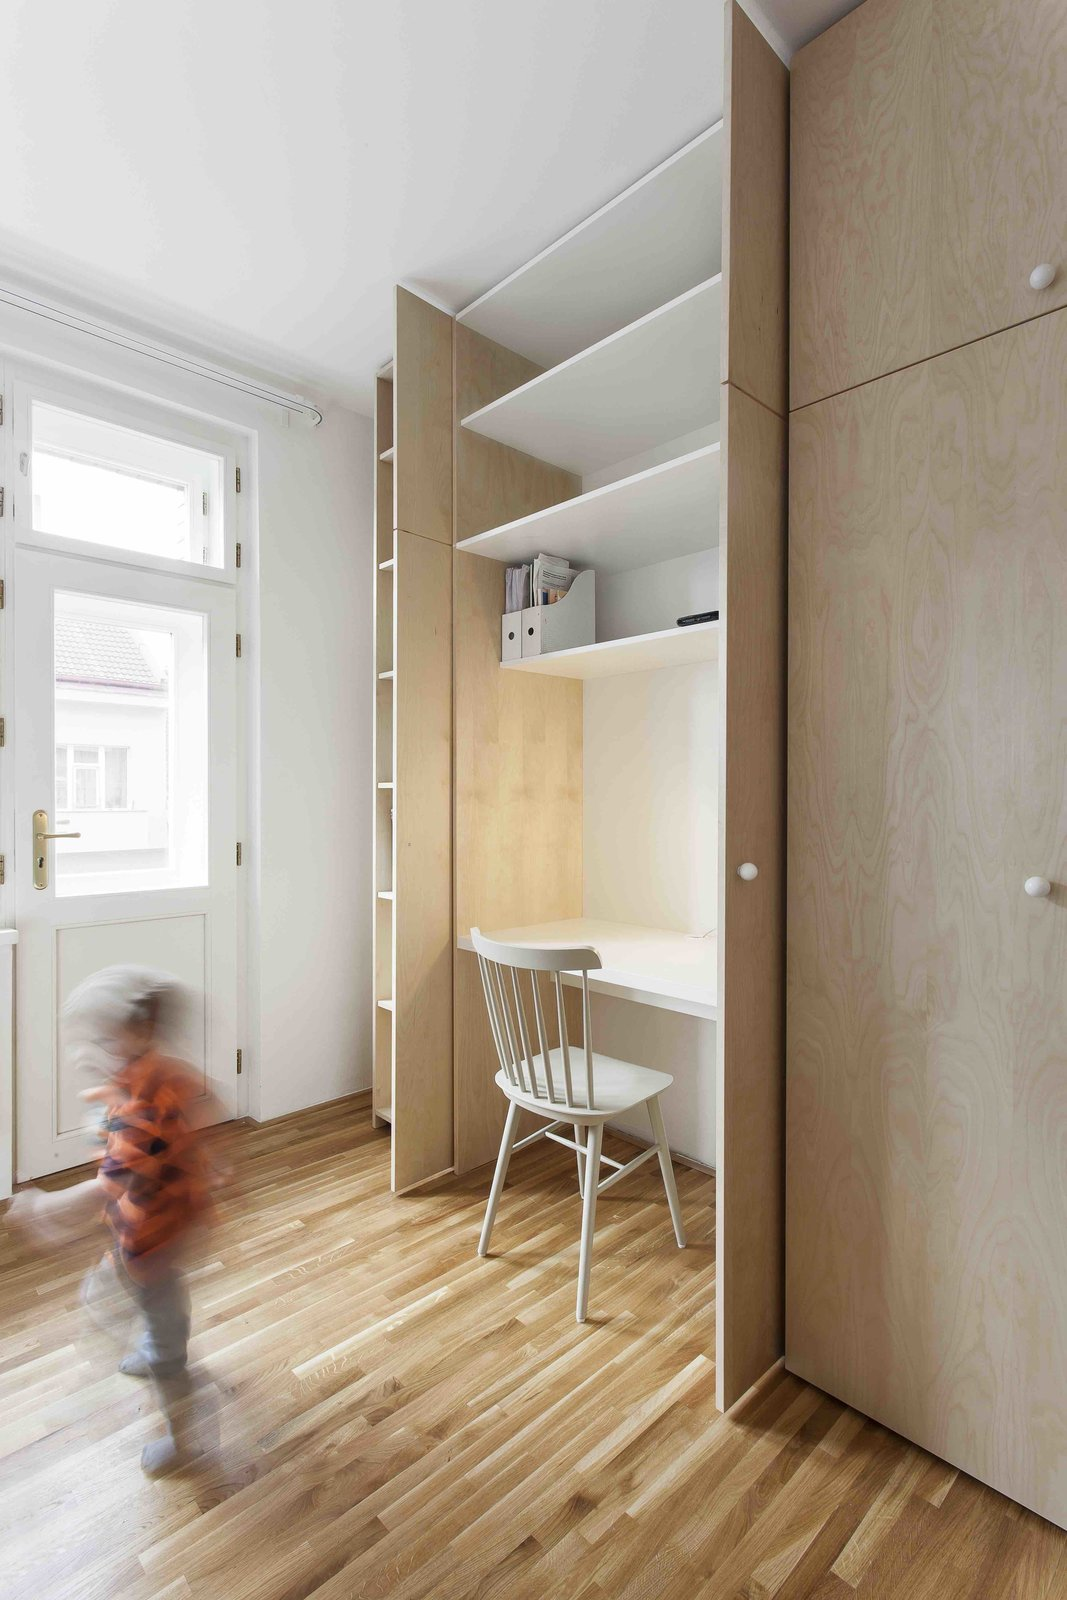 Storage Room, Closet Storage Type, and Shelves Storage Type  Photo 7 of 13 in A Family Apartment in Prague That's Filled With Clever Storage Solutions and Built-In Nooks